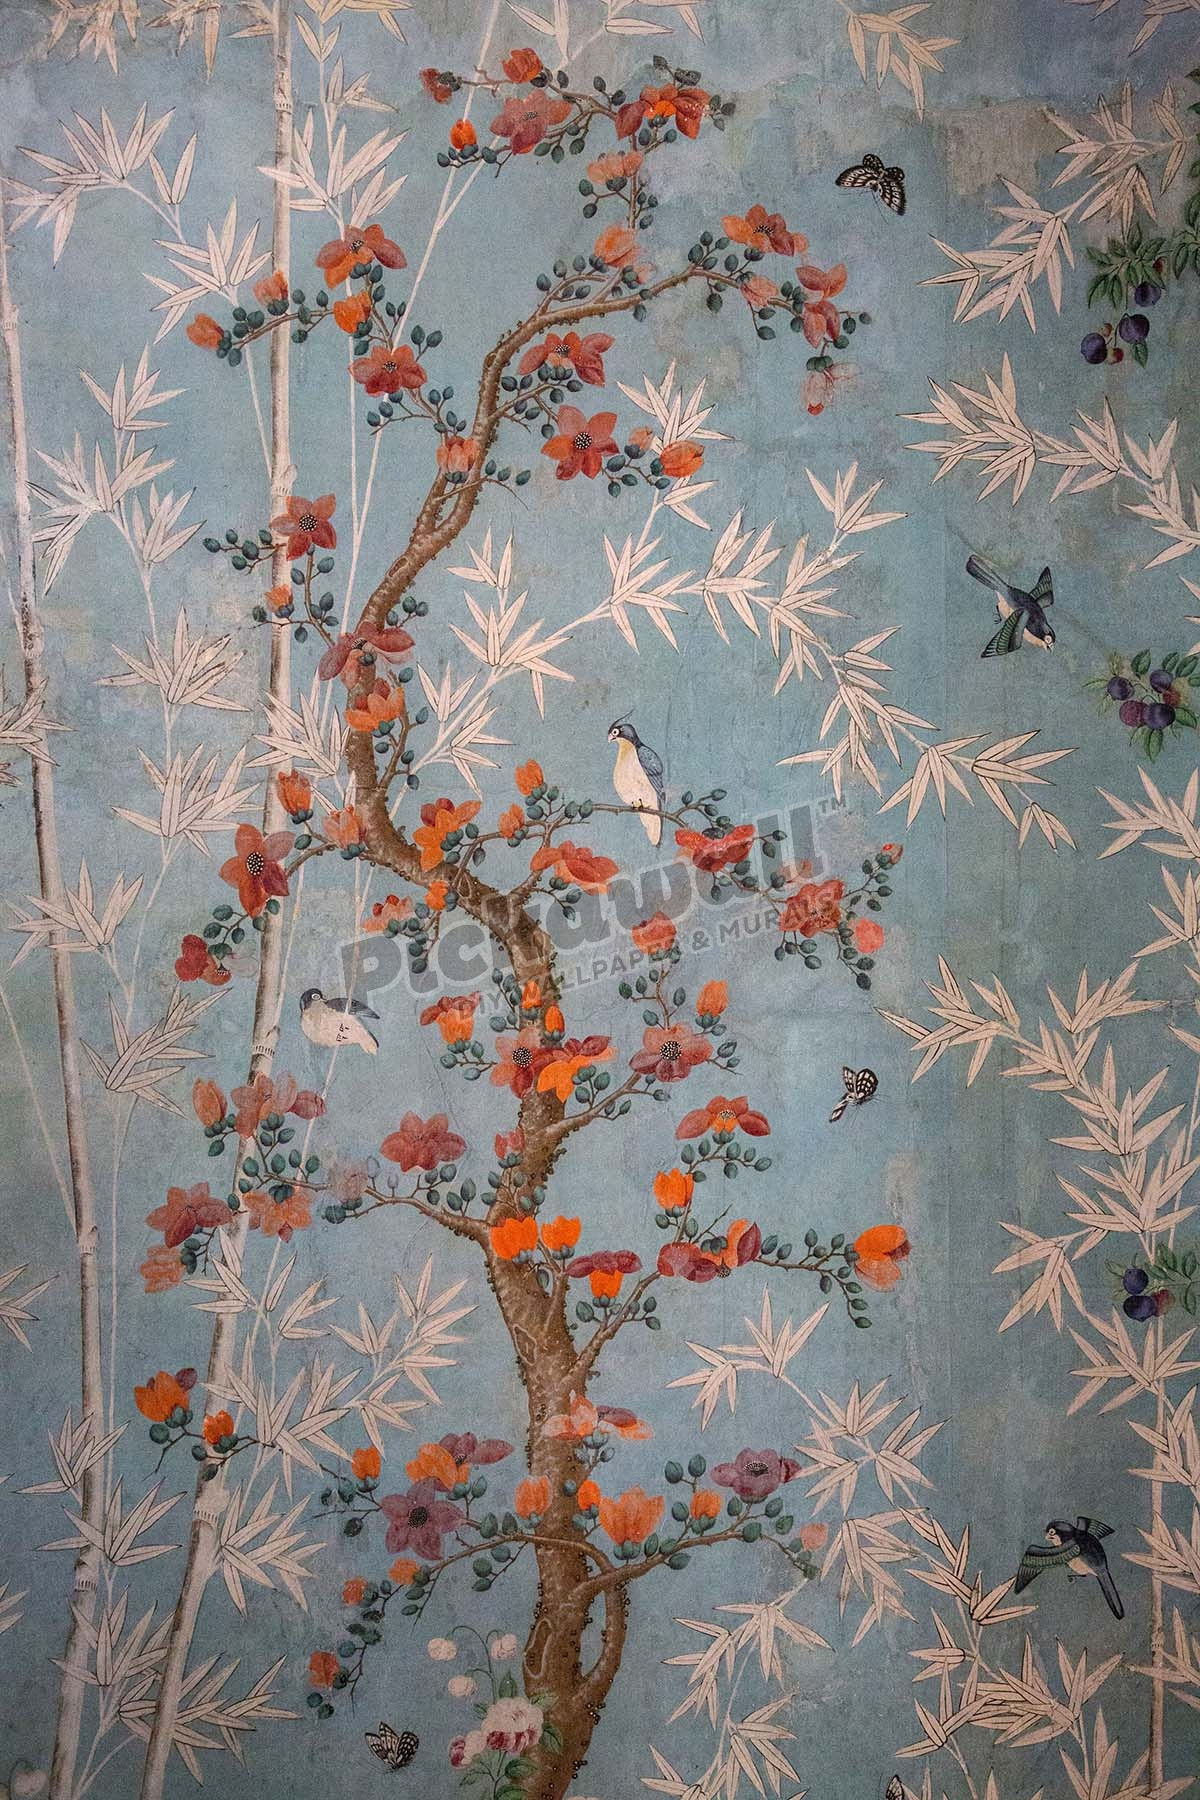 18th Century Chinese Floral Wallpaper Design